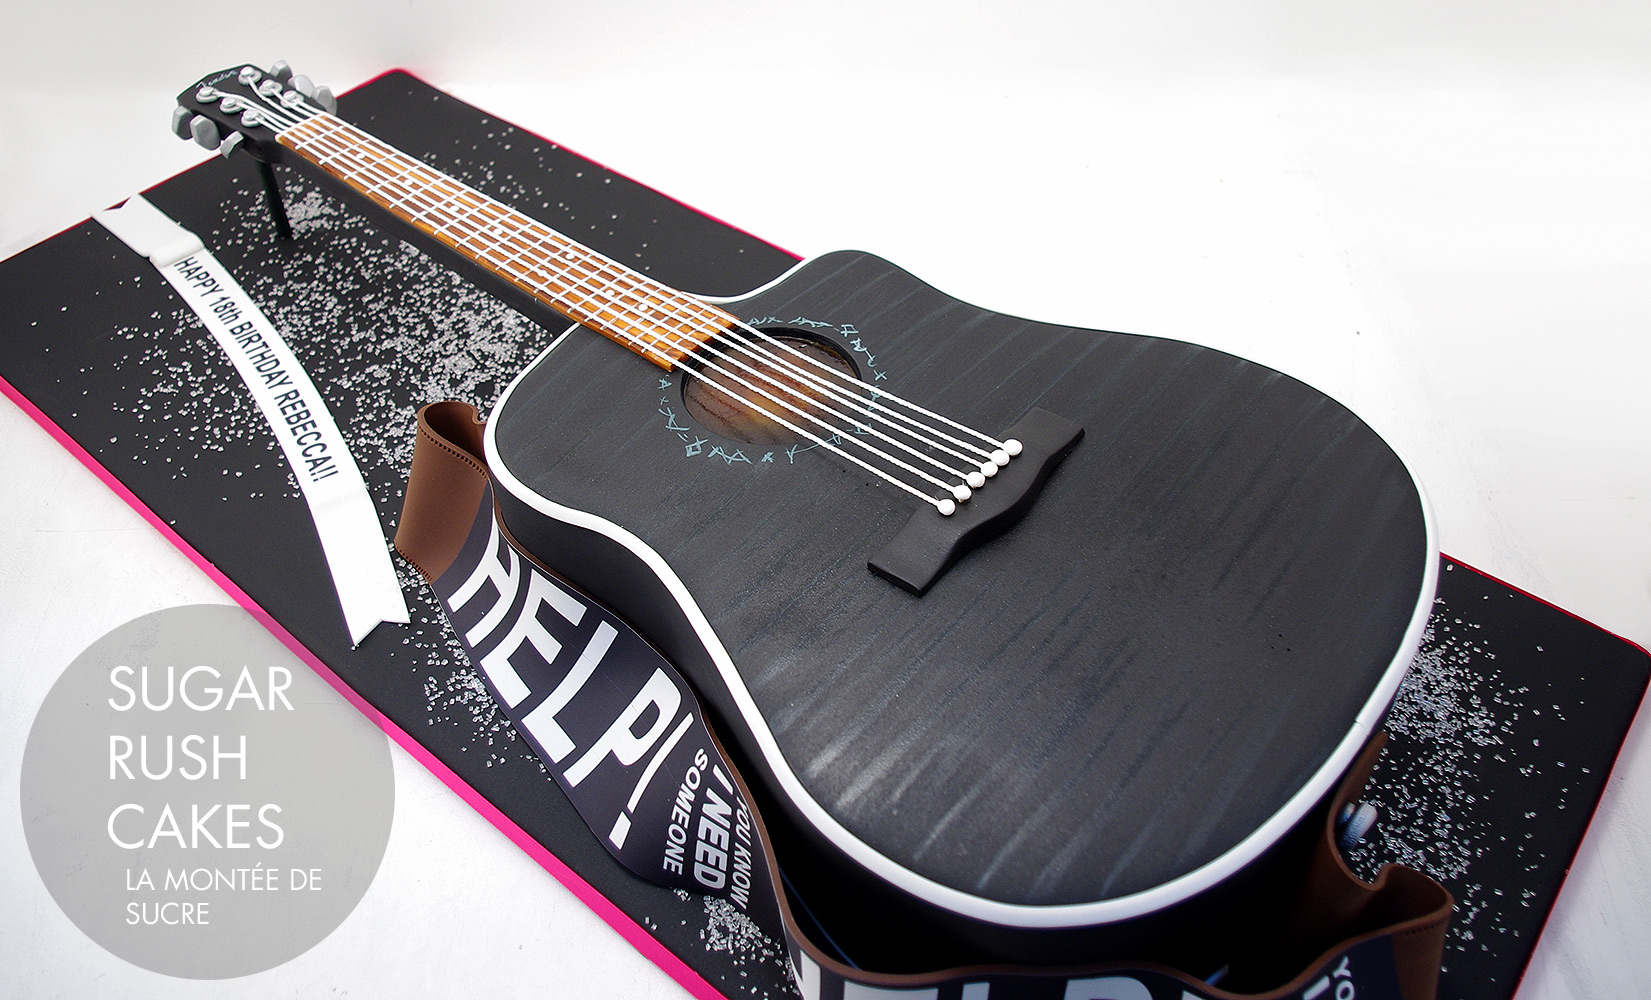 Fender acoustic guitar cake